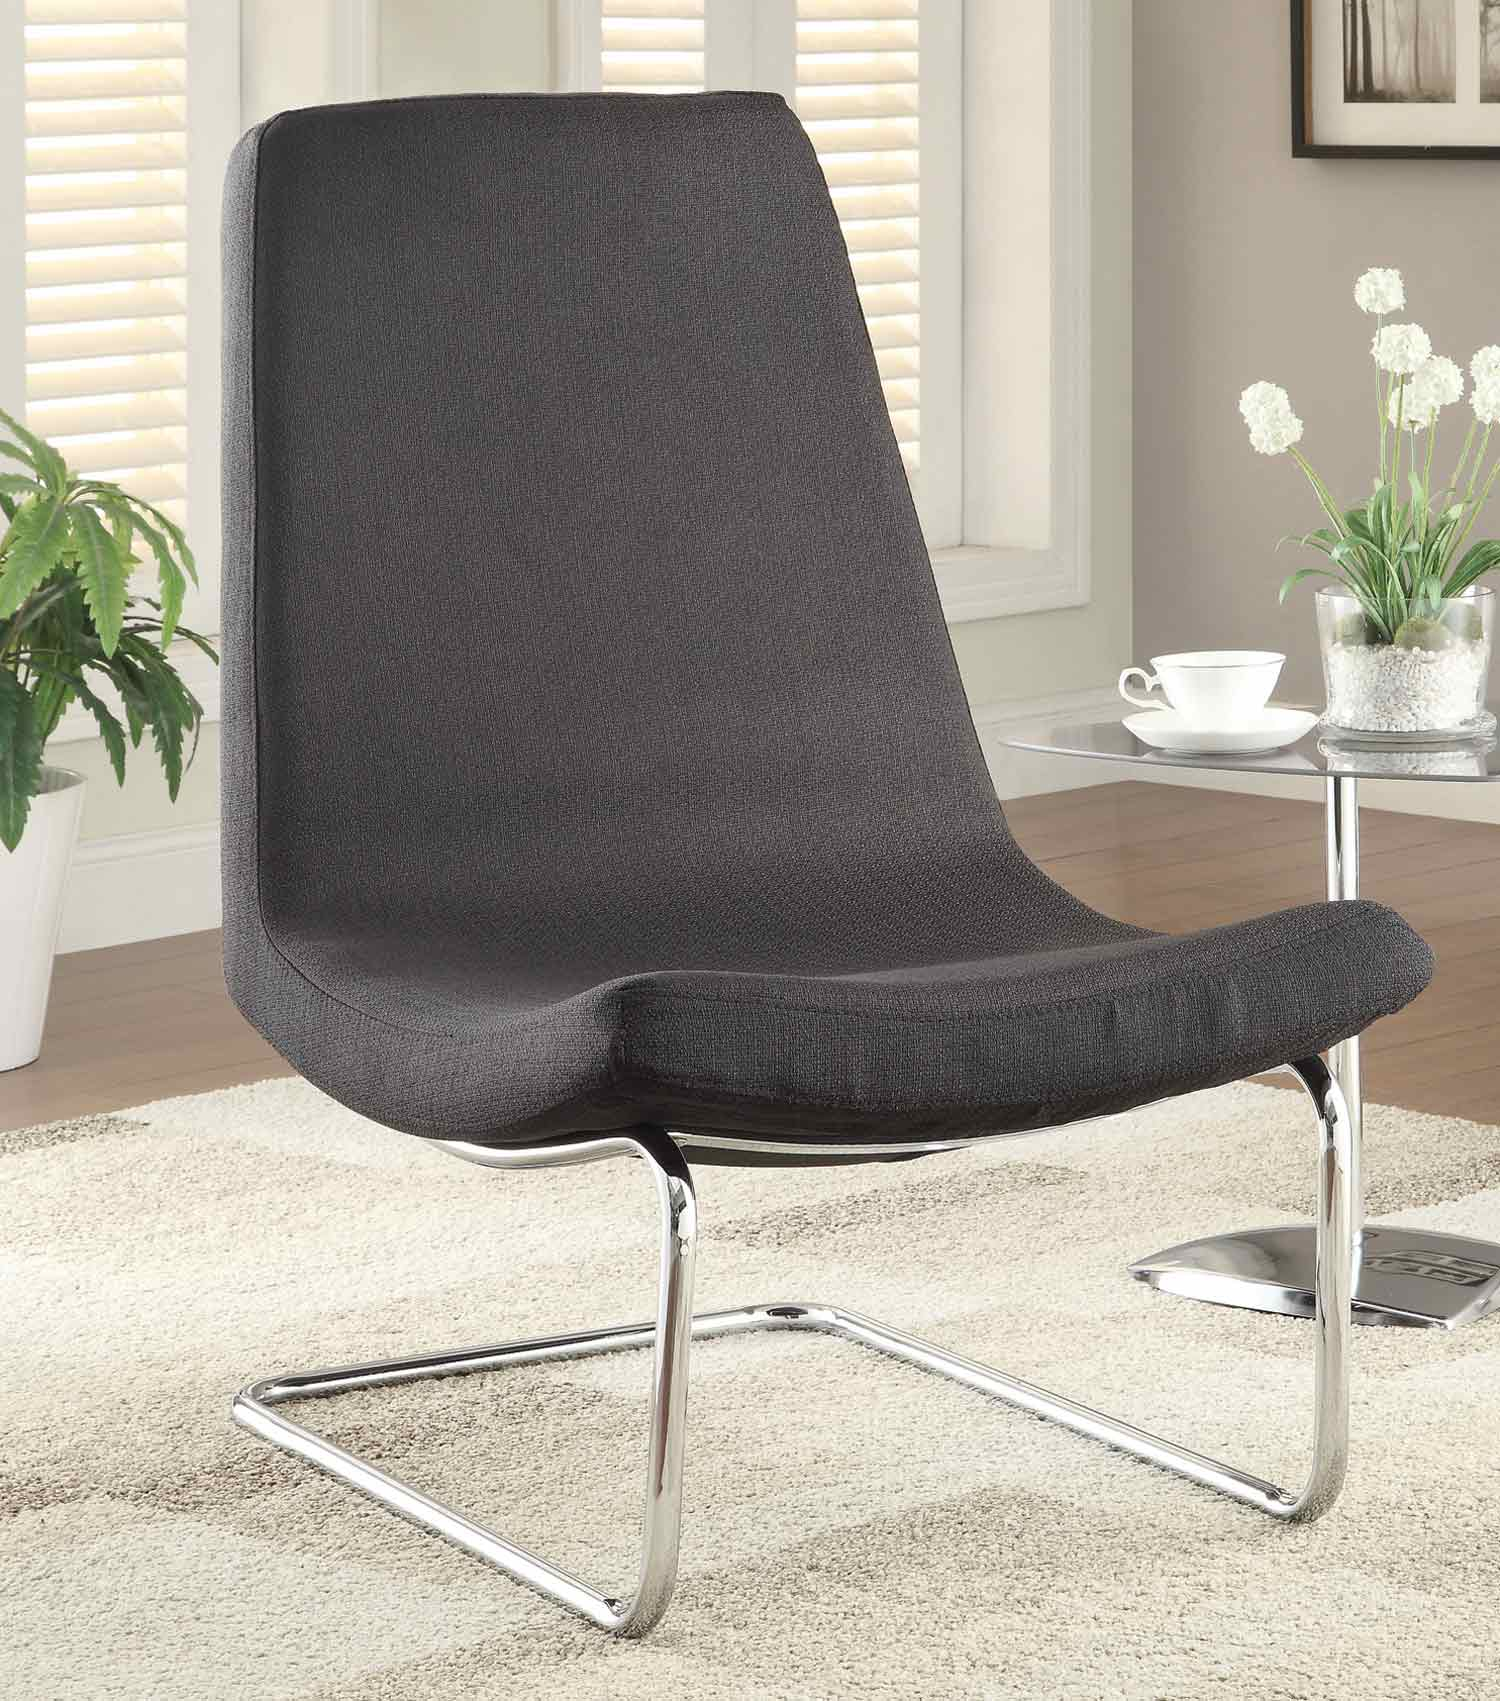 Coaster 902247 Accent Chair - Black